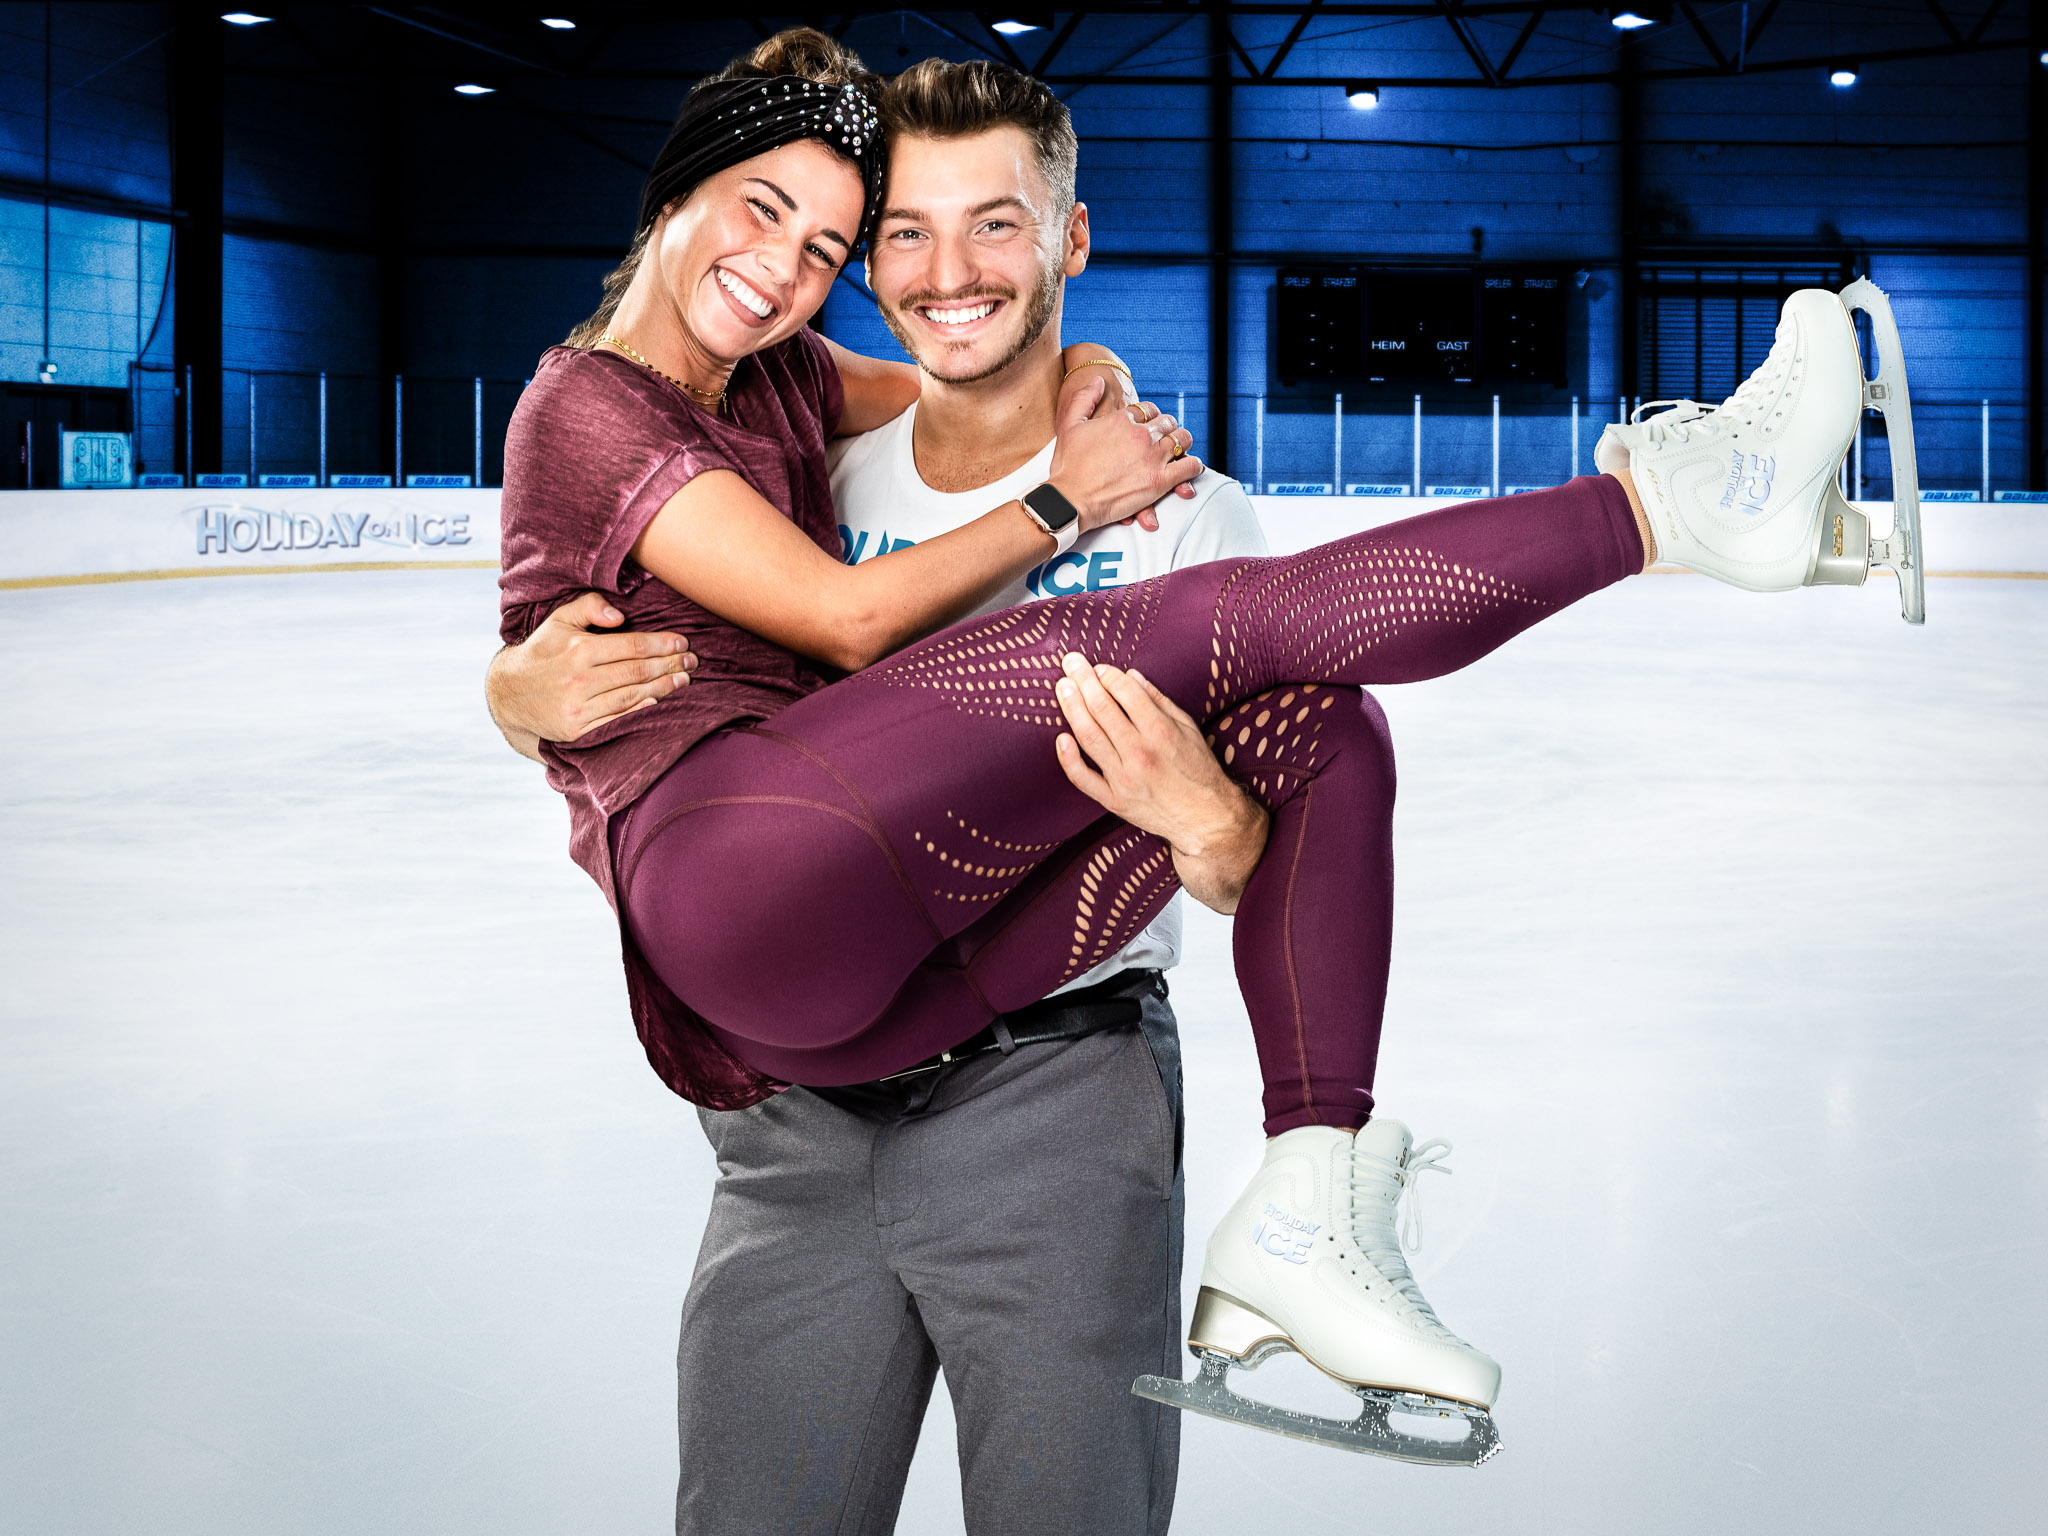 Joti Polizoakis ist Sarah Lombardis Eislaufpartner bei HOLIDAY ON ICE